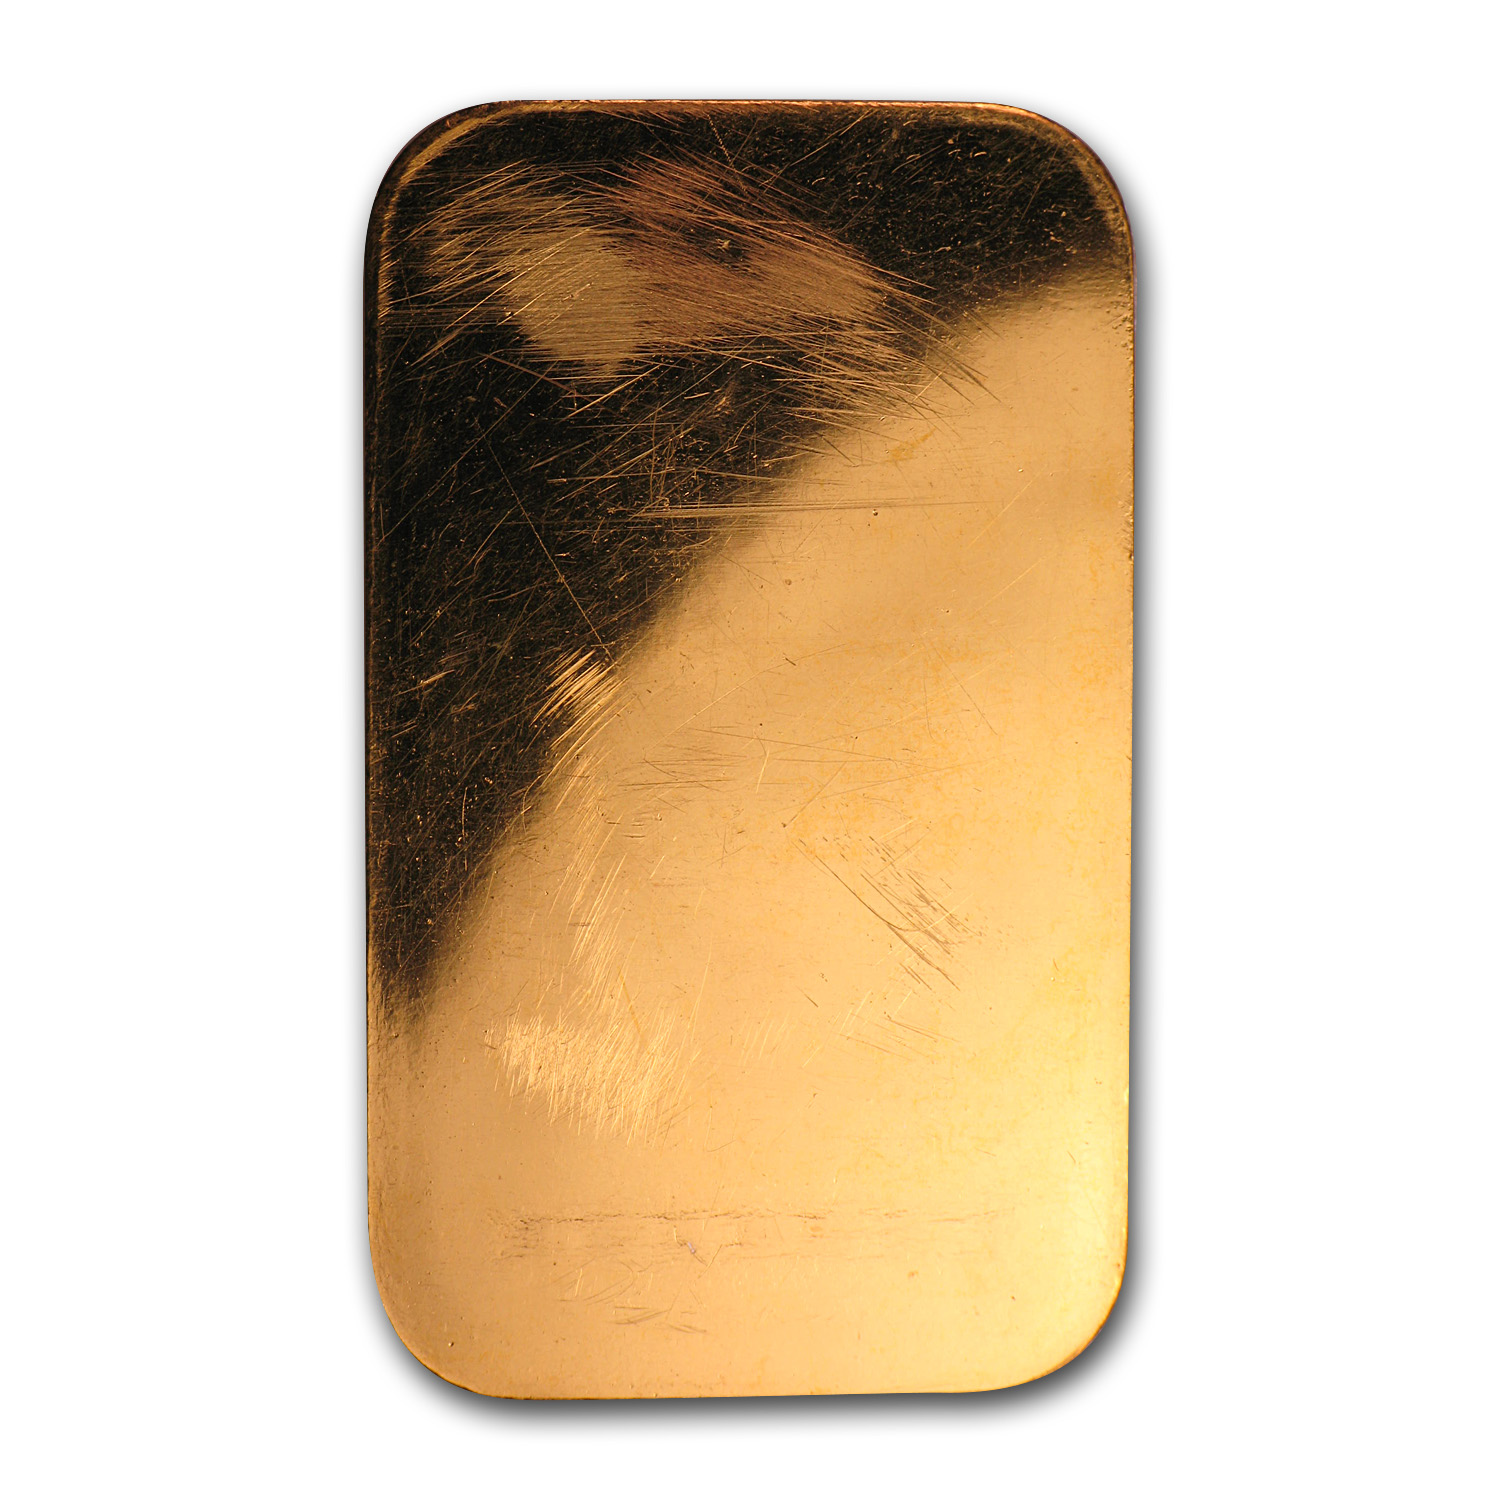 1/2 oz Gold Bars - Johnson Matthey (Plain Back)